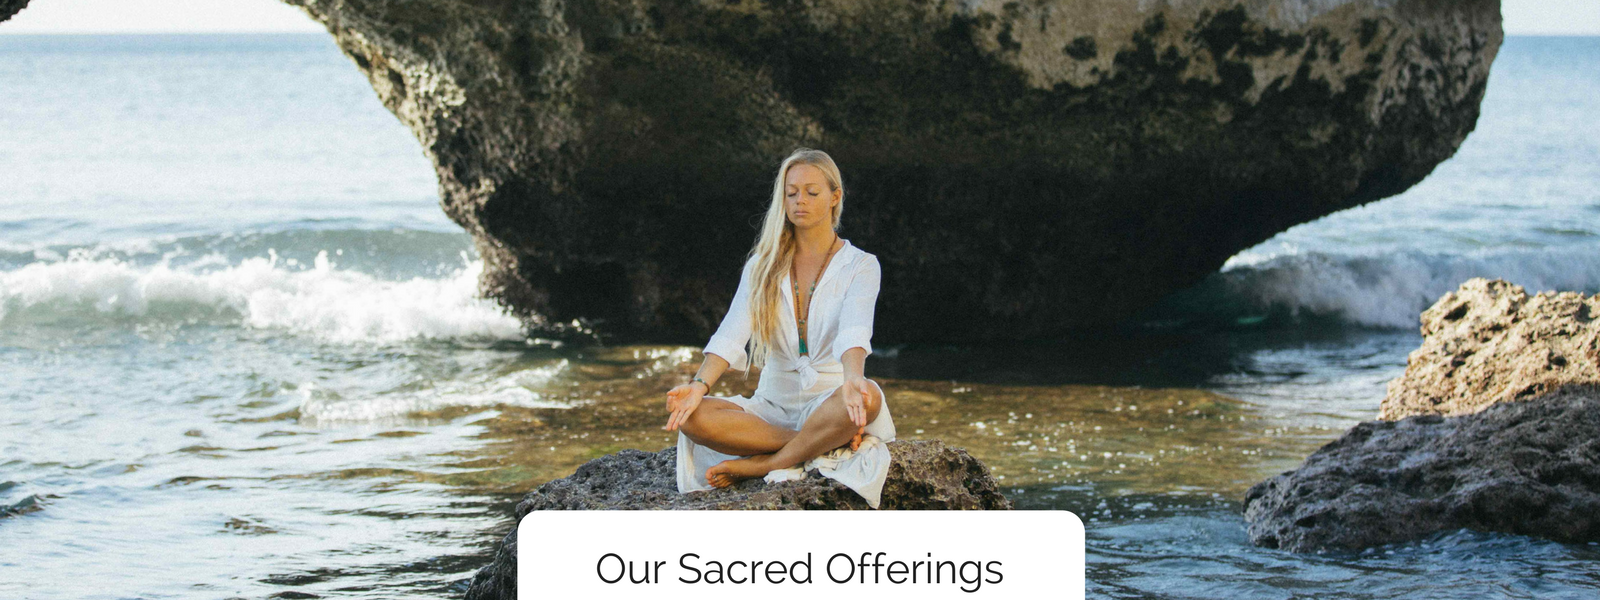 Our Sacred Offerings - Bali Malas